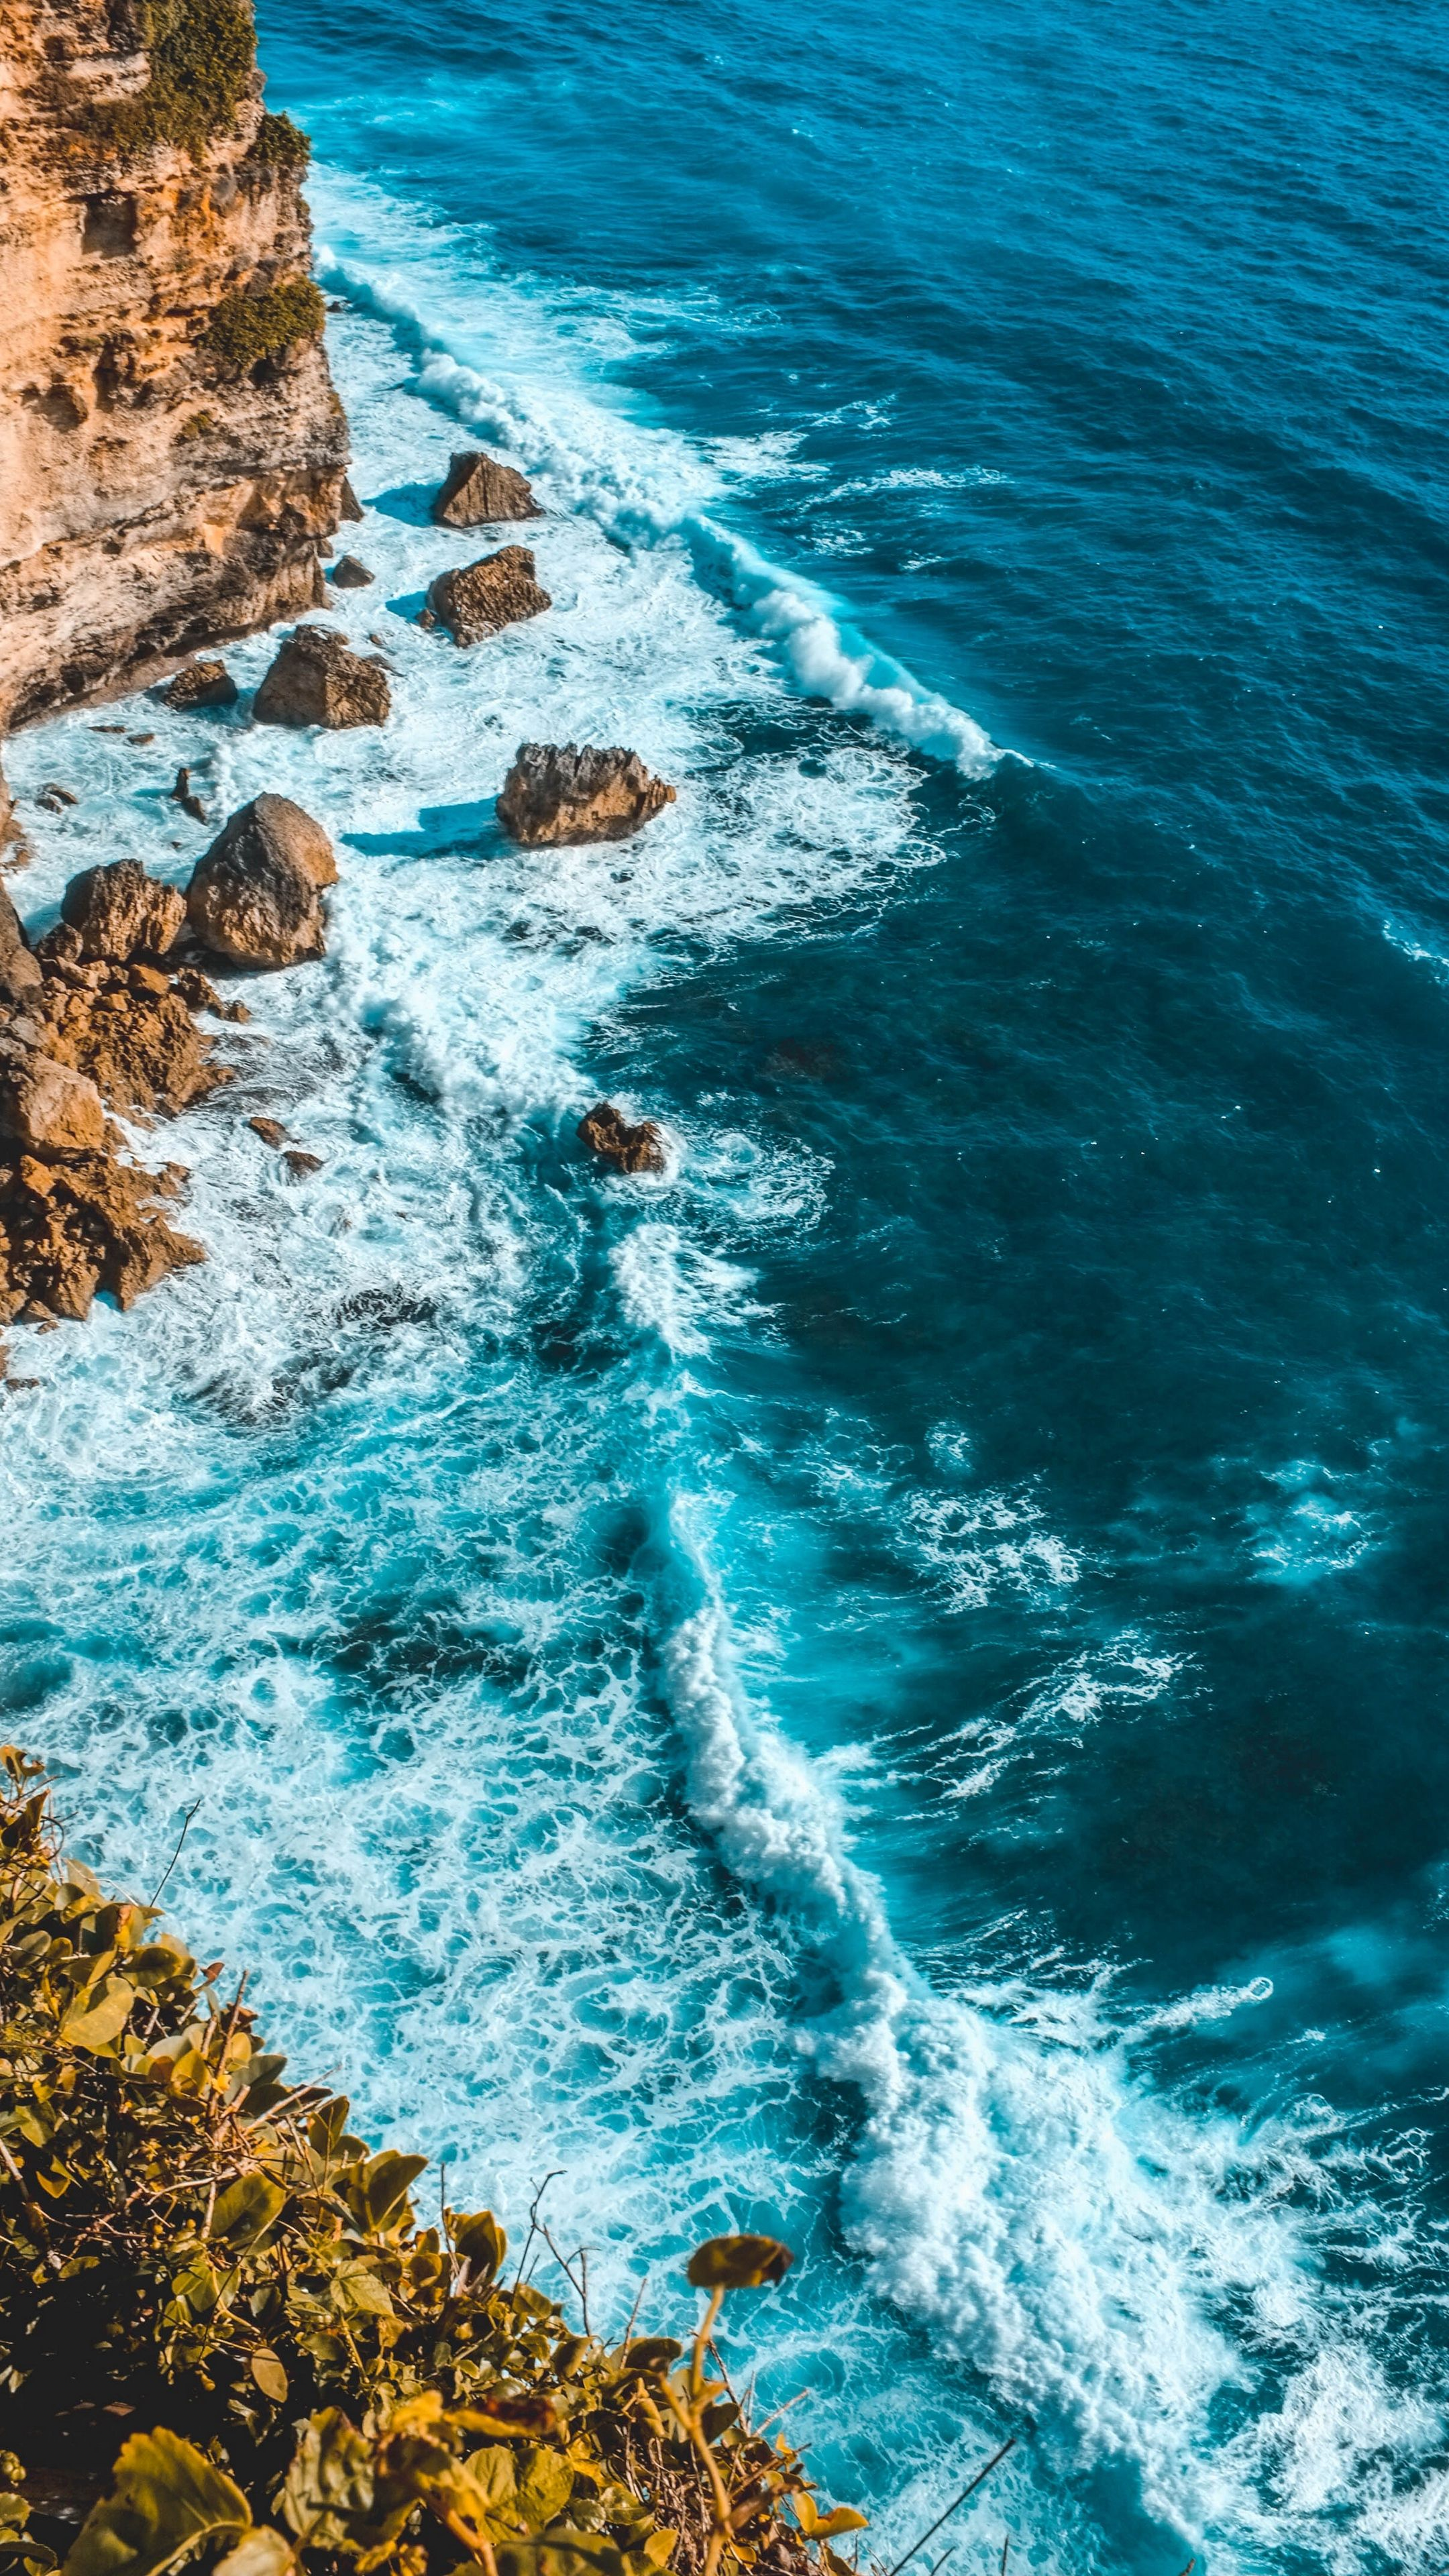 Sea ocean beach aerial iPhone wallpaper HD | Wallpapers & Backgrounds in 2019 | Ocean wallpaper ...